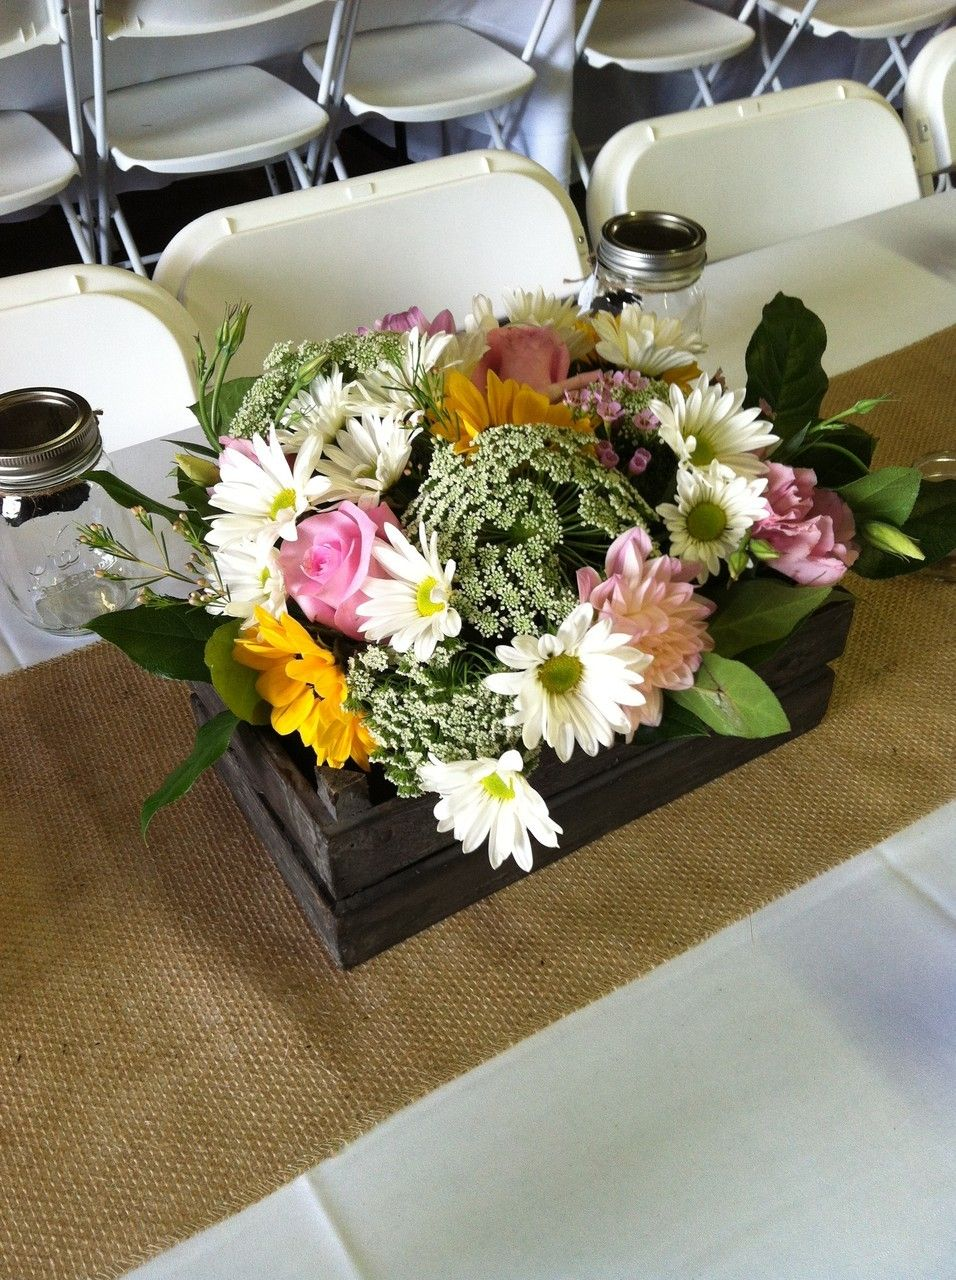 Rustic wedding centerpiece with wood crate, burlap and daisies by Fields in Bloom